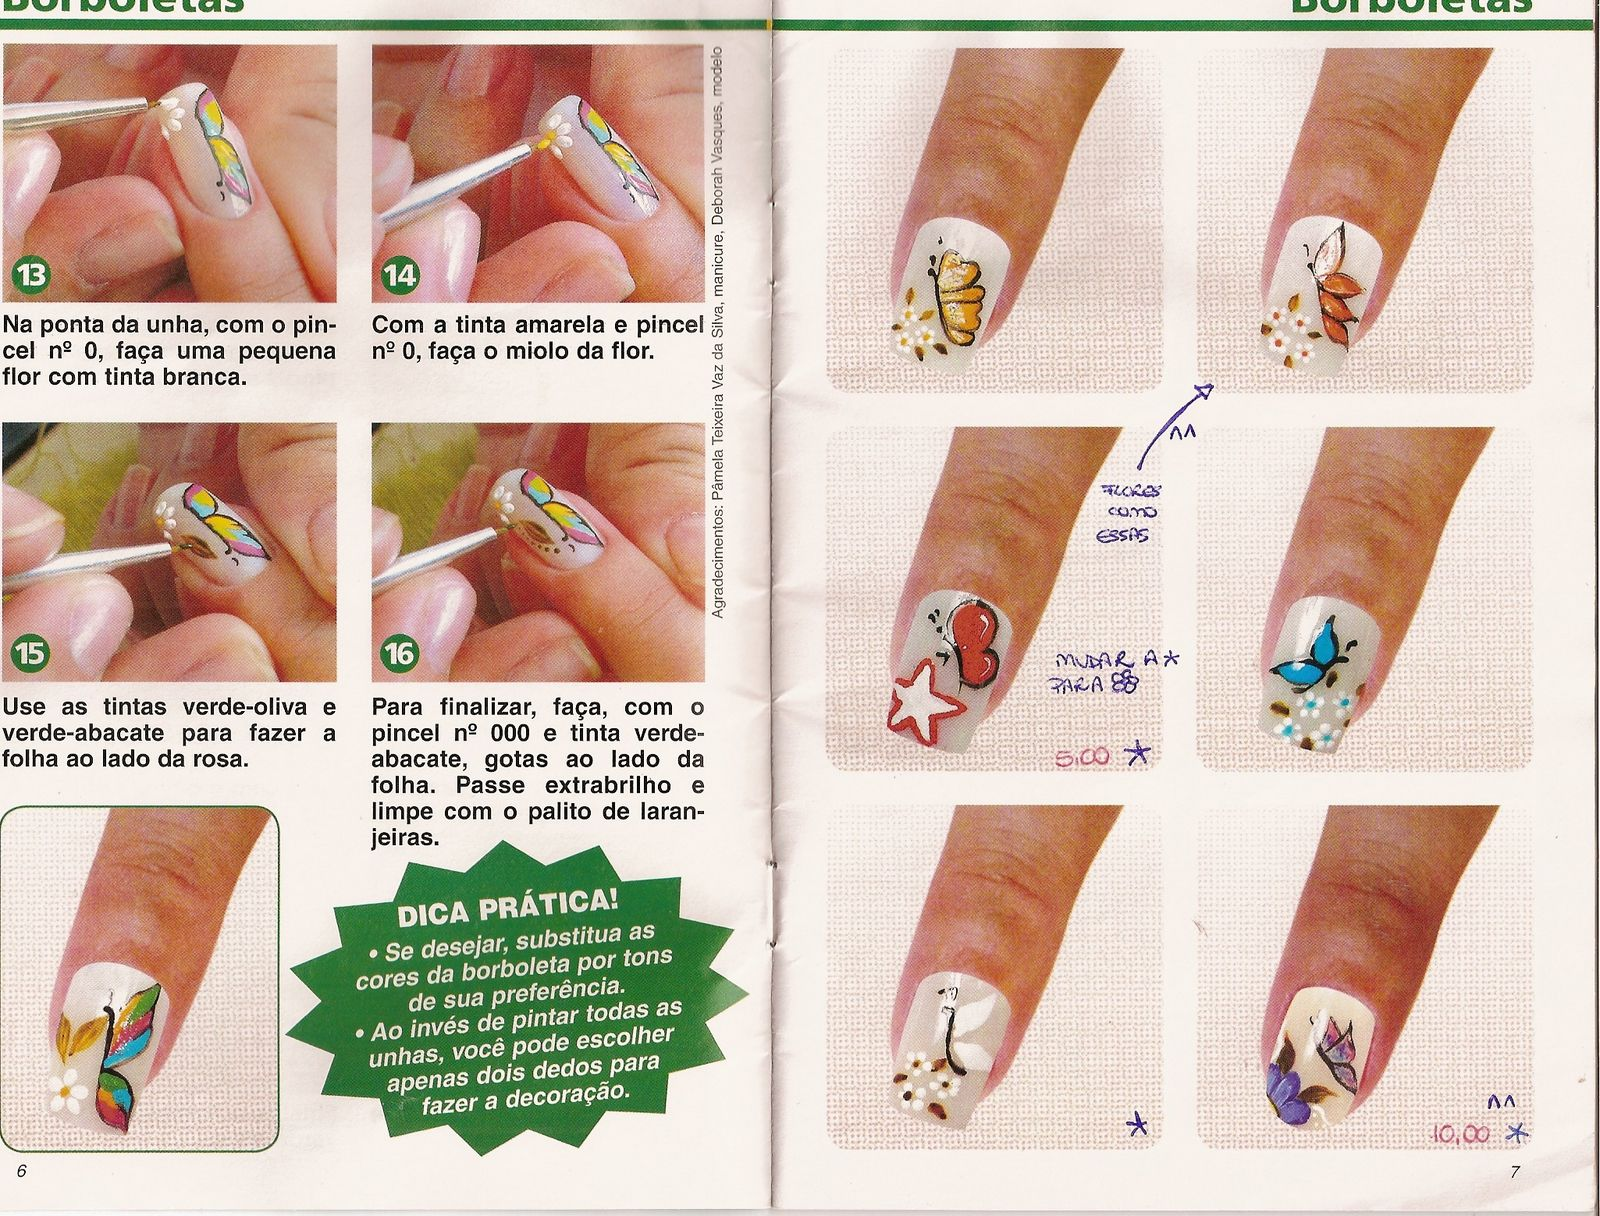 Uñas Decoradas Manos y Pies. Tutoriales, Revistas, VideosManicura